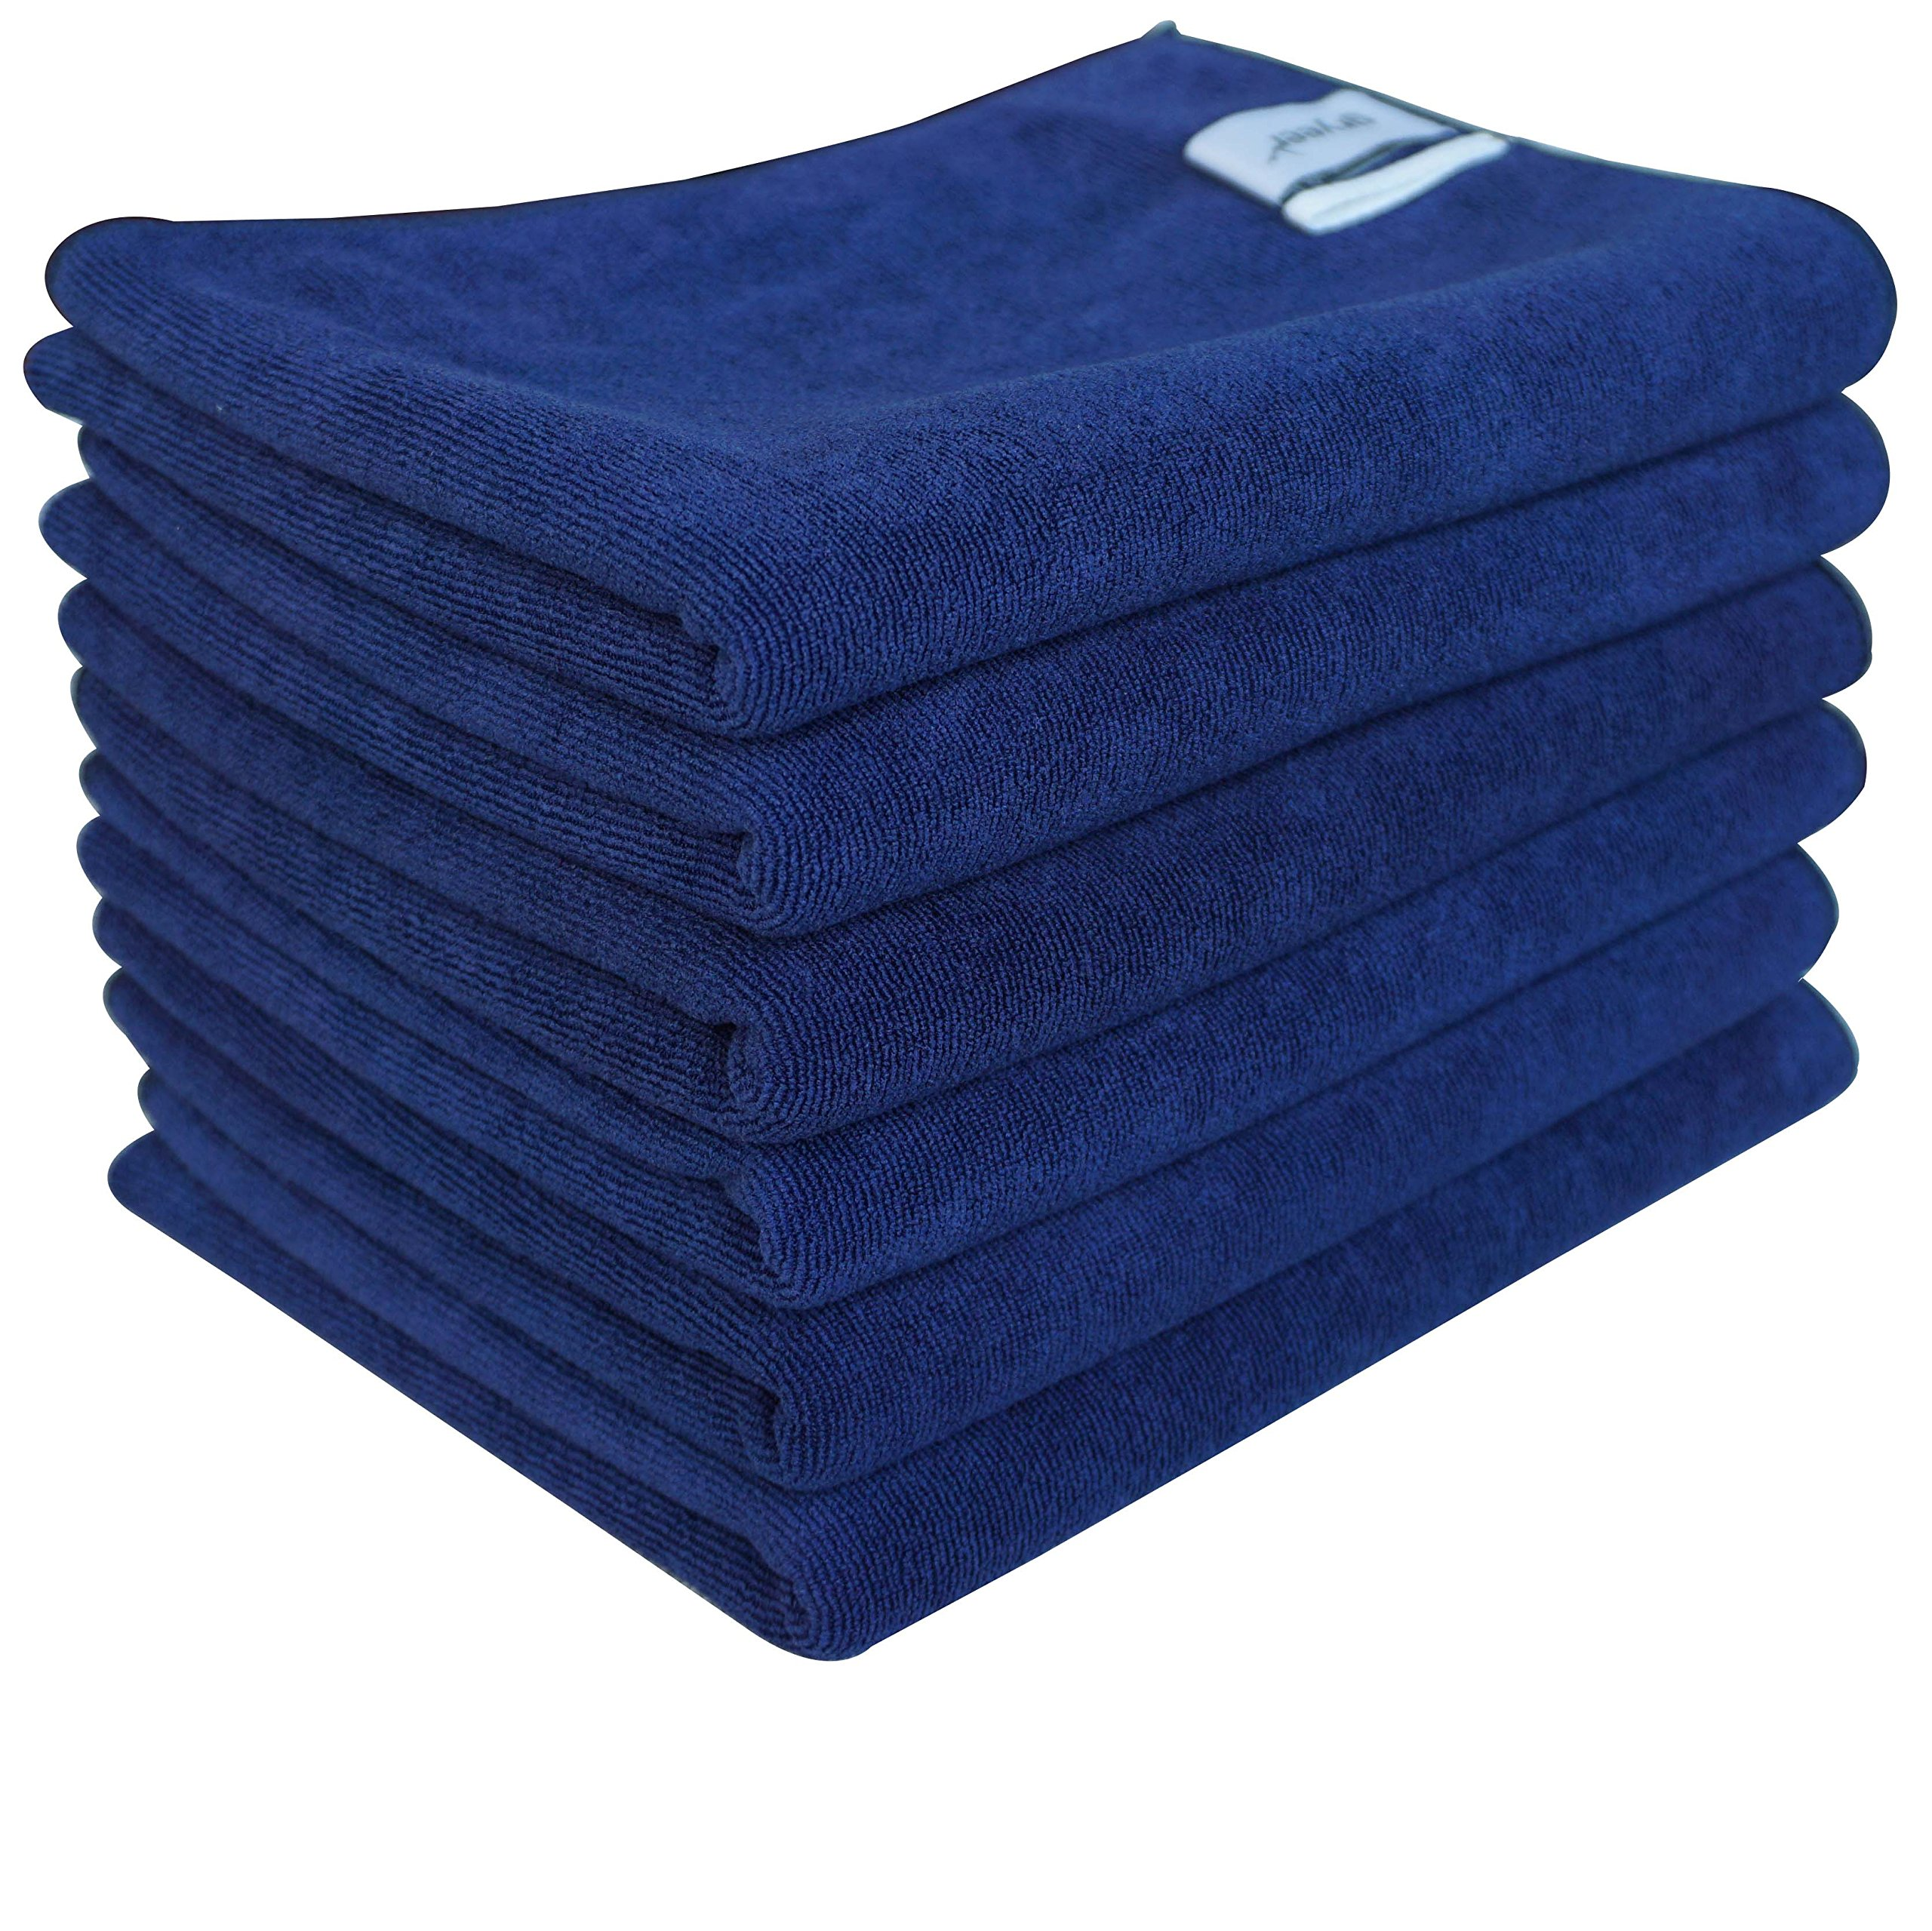 Gryeer Microfiber Kitchen Towels - Highly Absorbent, Soft and Lint Free Dish Towels, 26x18 Inch, Pack of 6, Blue